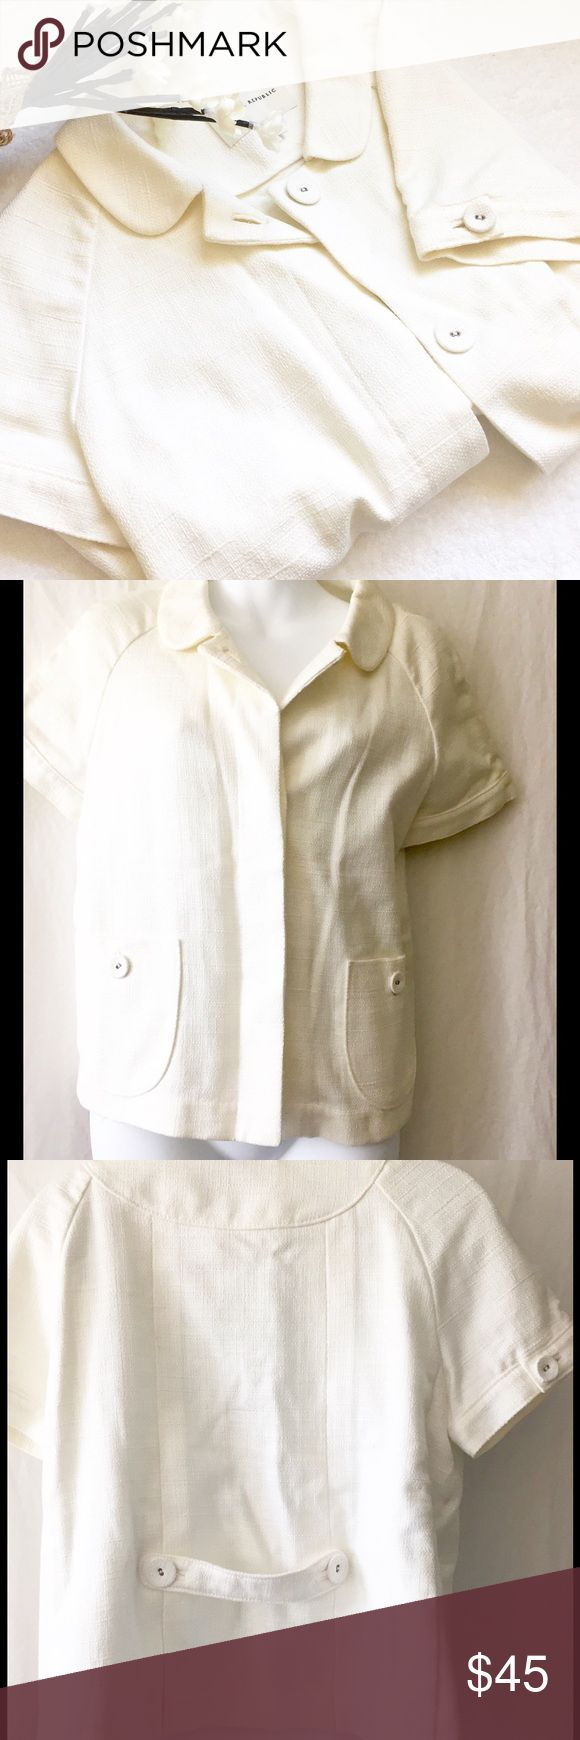 """BANANA REPUBLIC BOXY WHITE JACKET, SIZE M, NWT Pair with dress pants/skirt or with a bright tee underneath.  Never worn.  100% cotton. Chest measures 19"""" and jacket is 21"""" long. Banana Republic Jackets & Coats"""